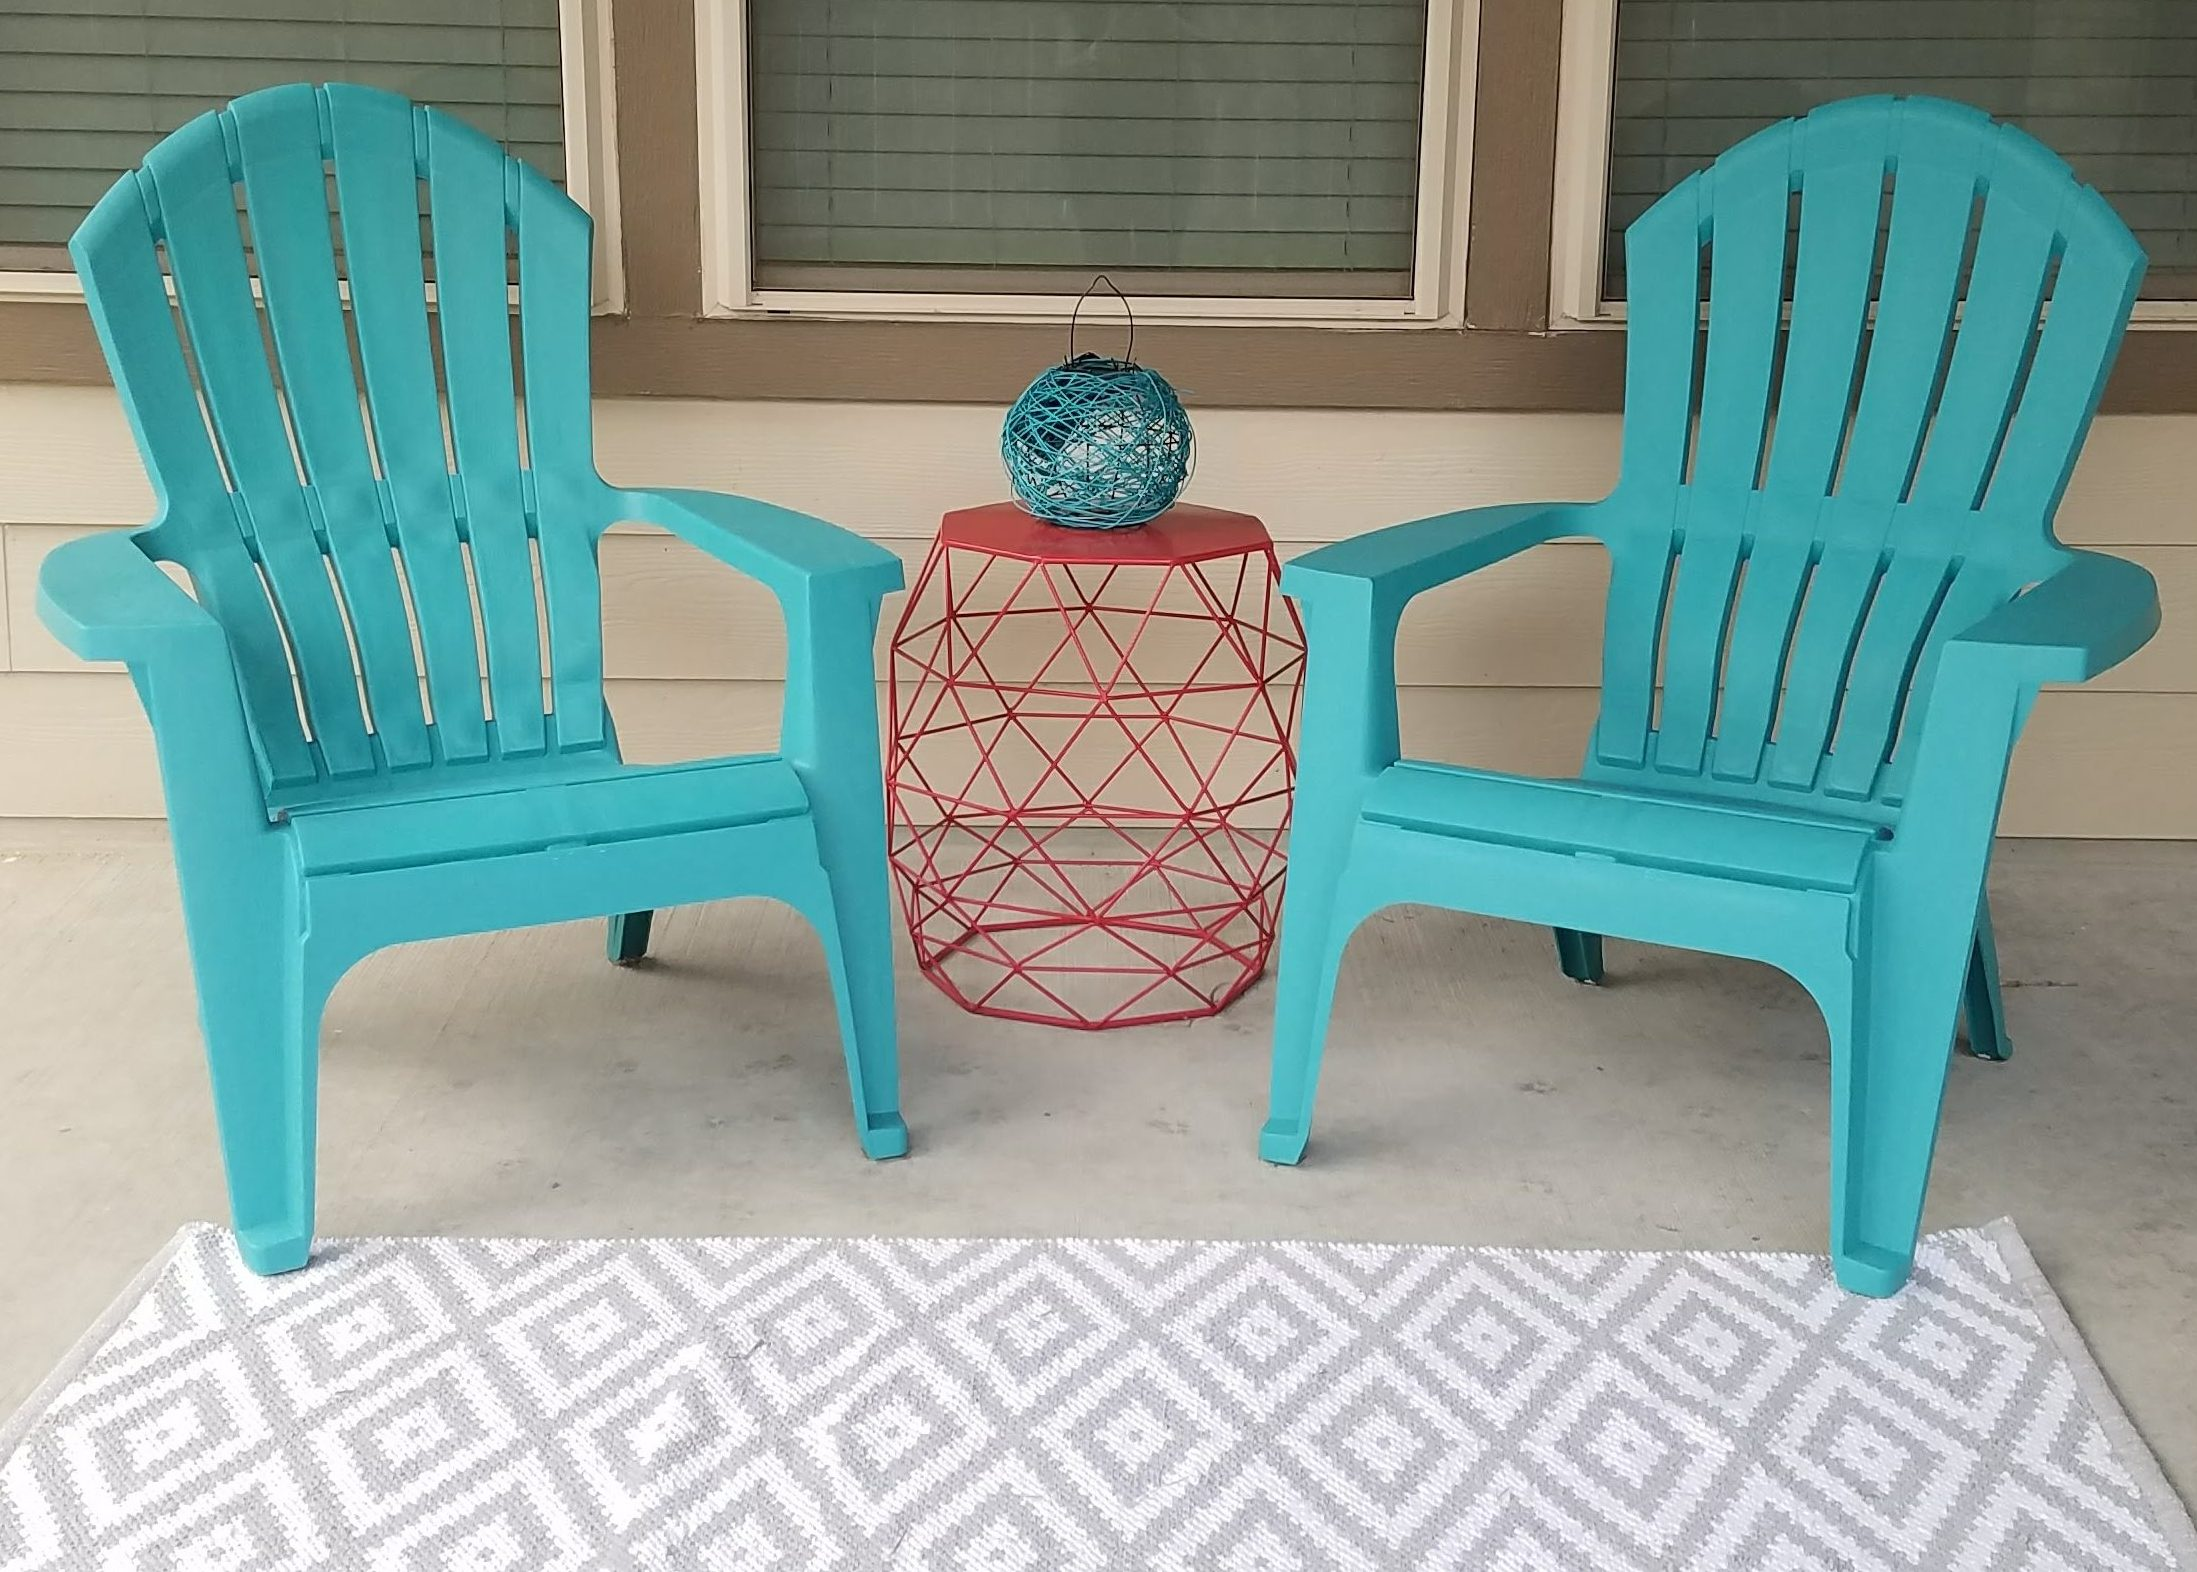 Cute and Colorful Patio Under 100 Dollars!